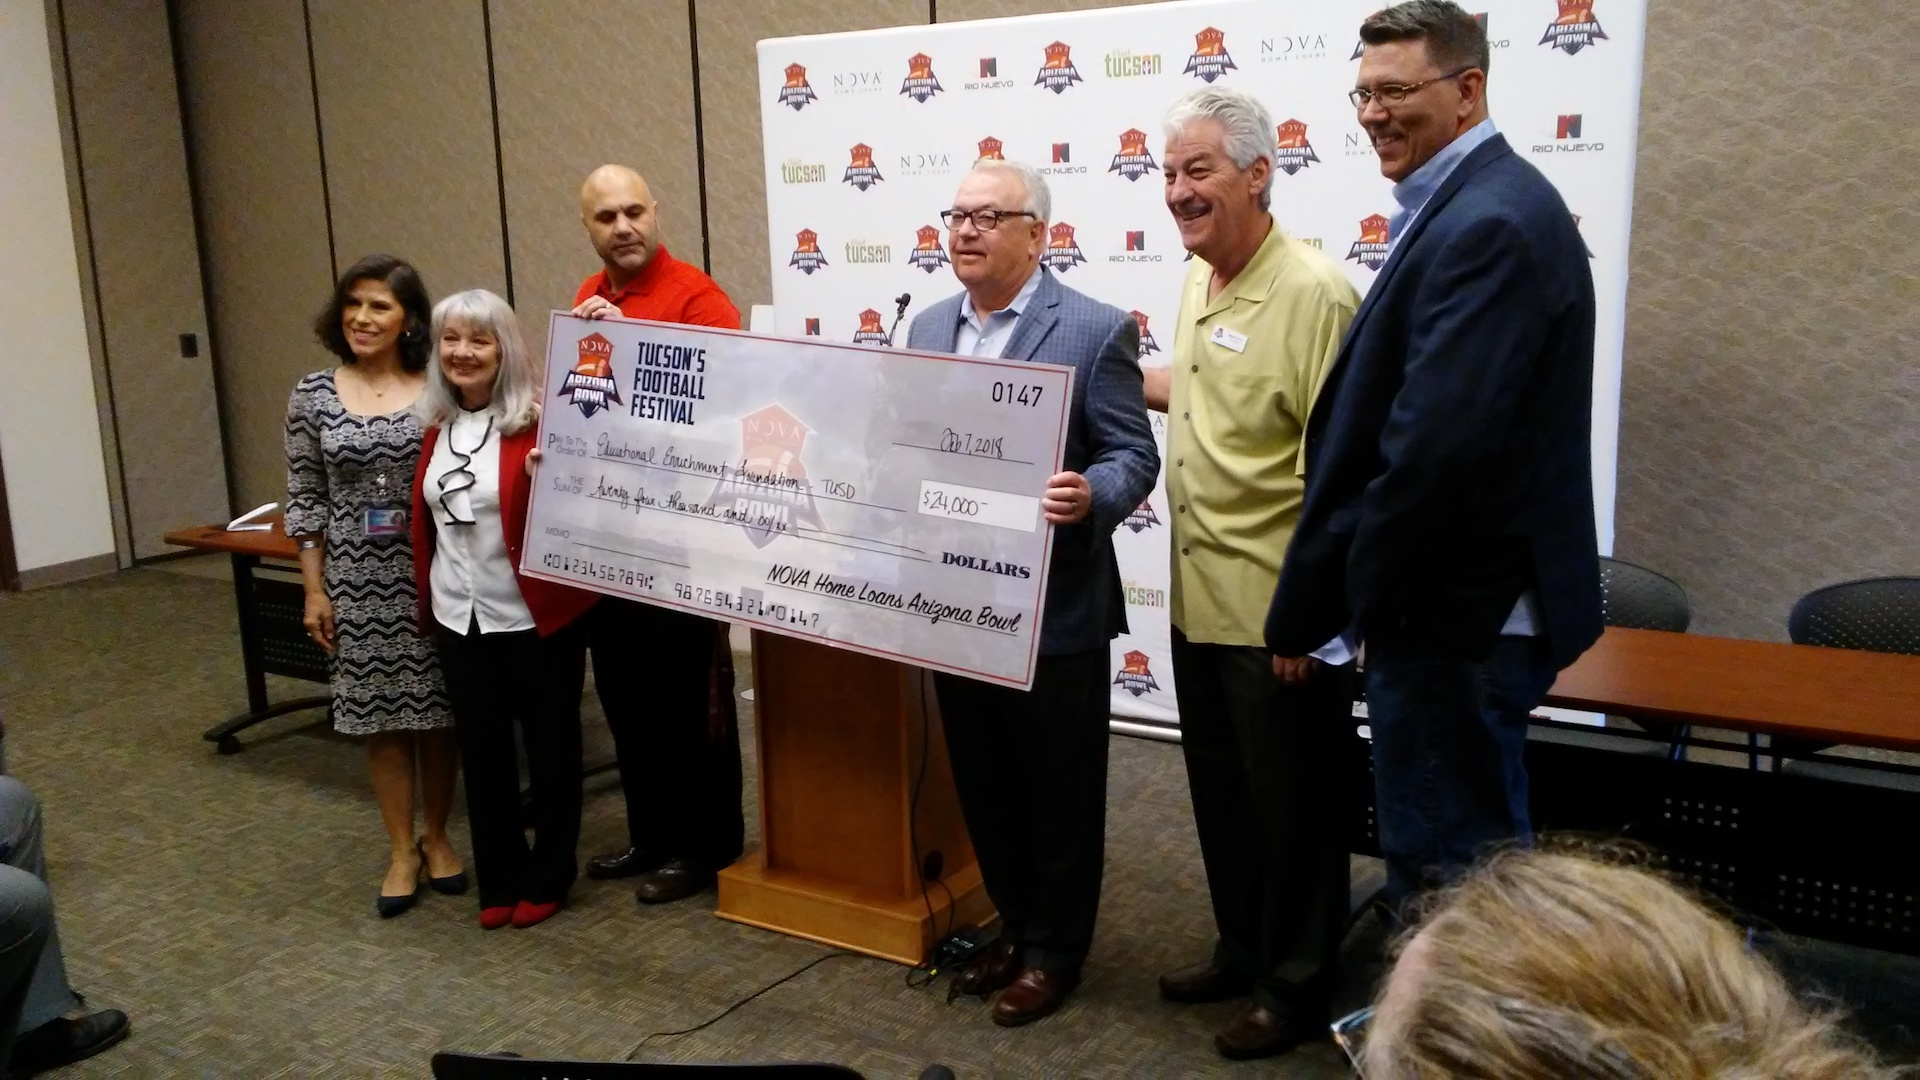 Arizona Bowl executive director Alan Young (third from right) delivers a donation to a Tucson teachers' foundation.  The money came from net proceeds gathered at the 2017 football bowl game.